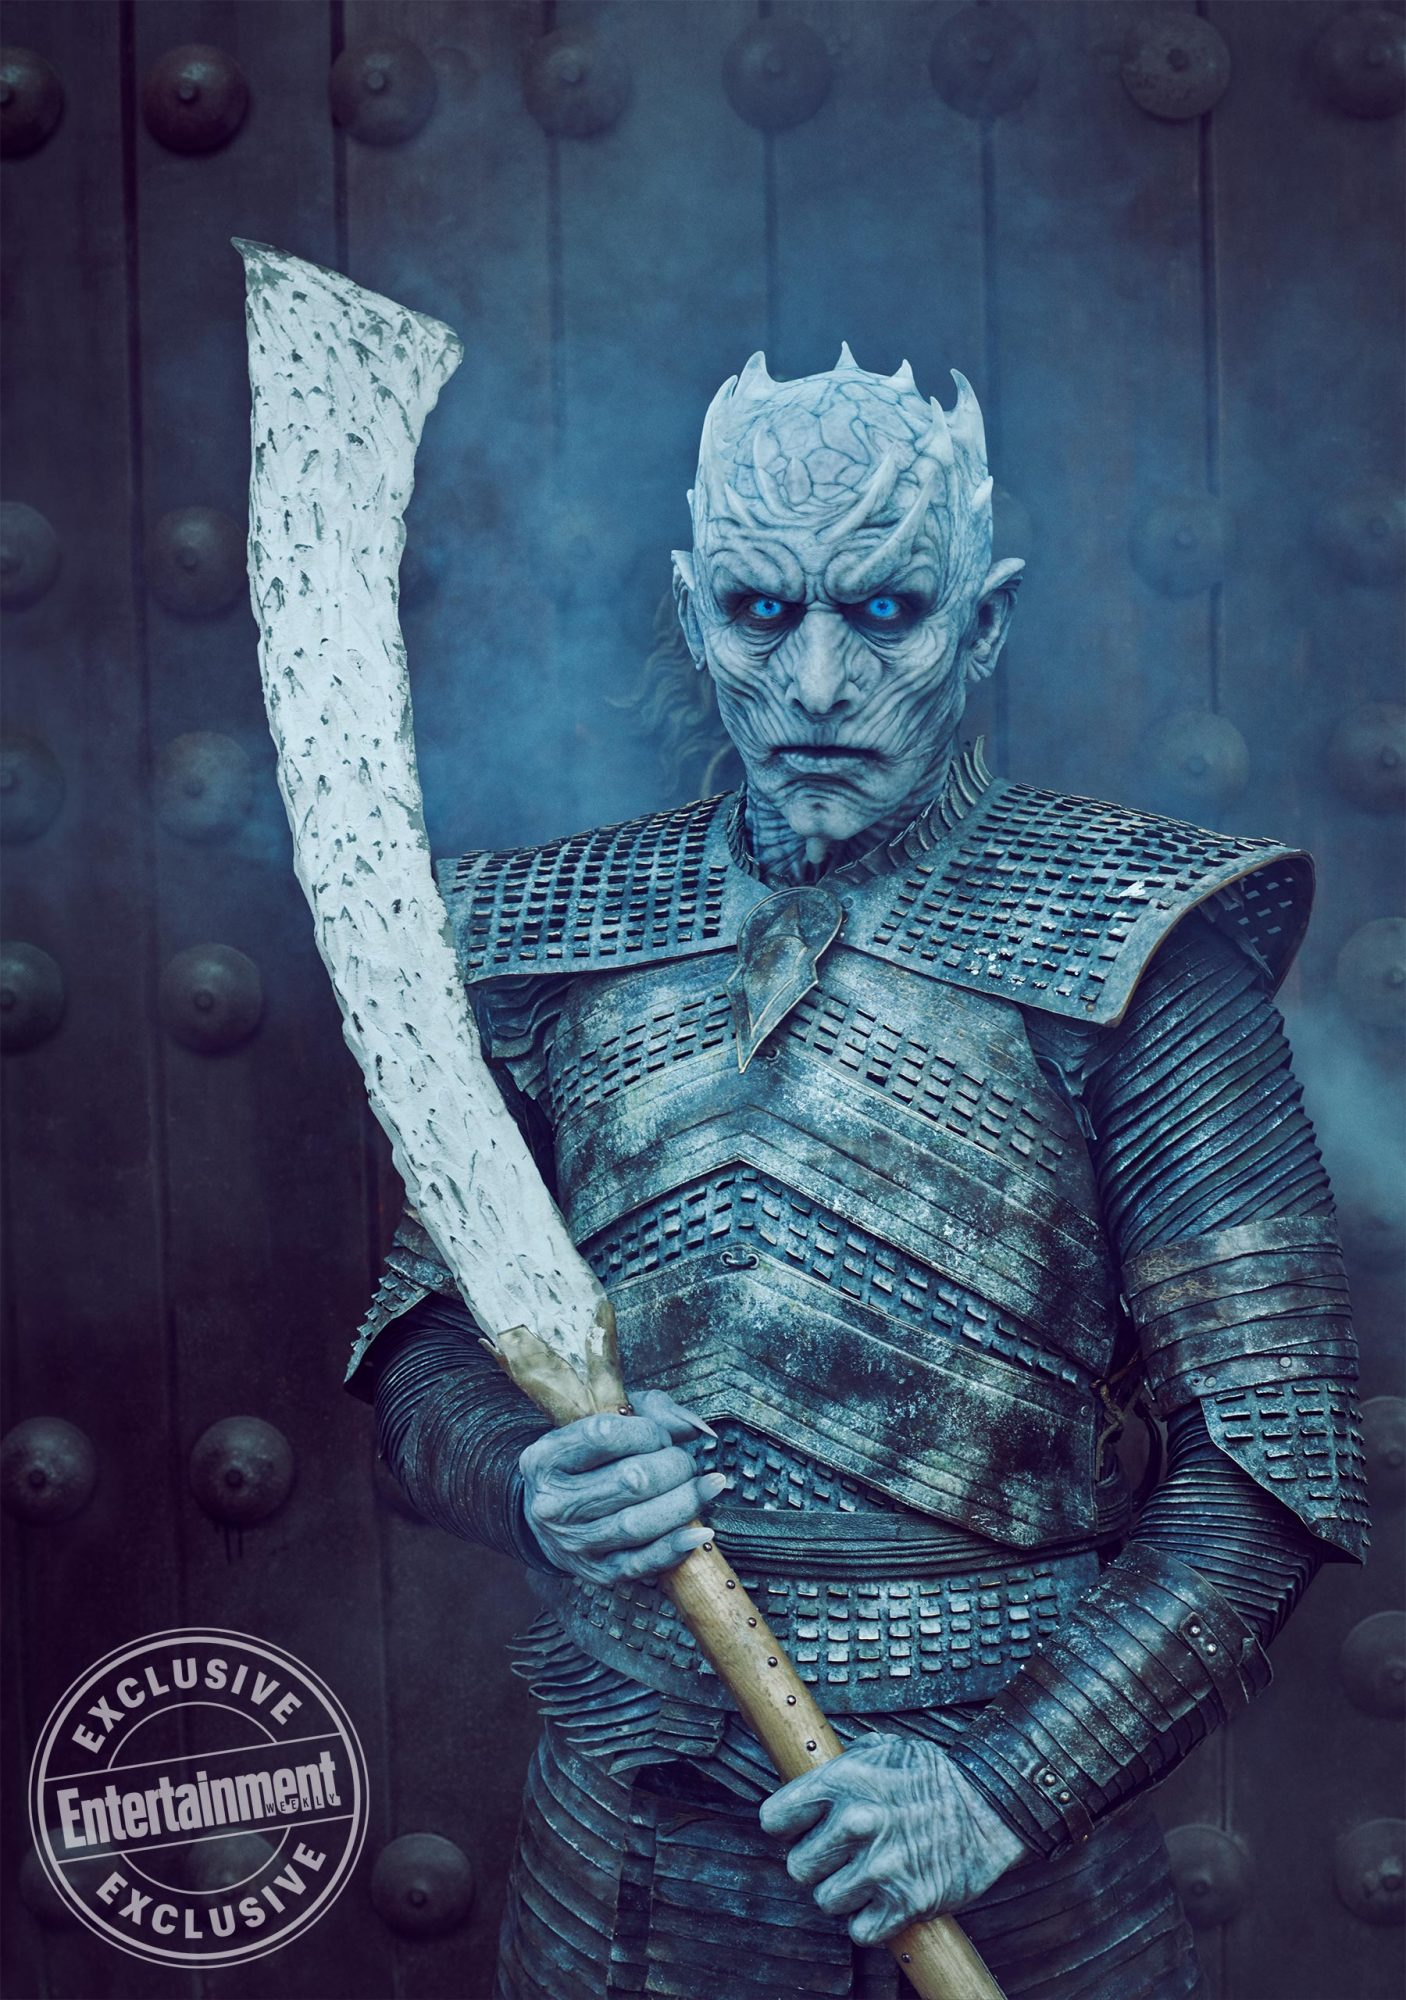 The Night King Speaks Game Of Thrones Actor Gives Rare Interview Ew Com